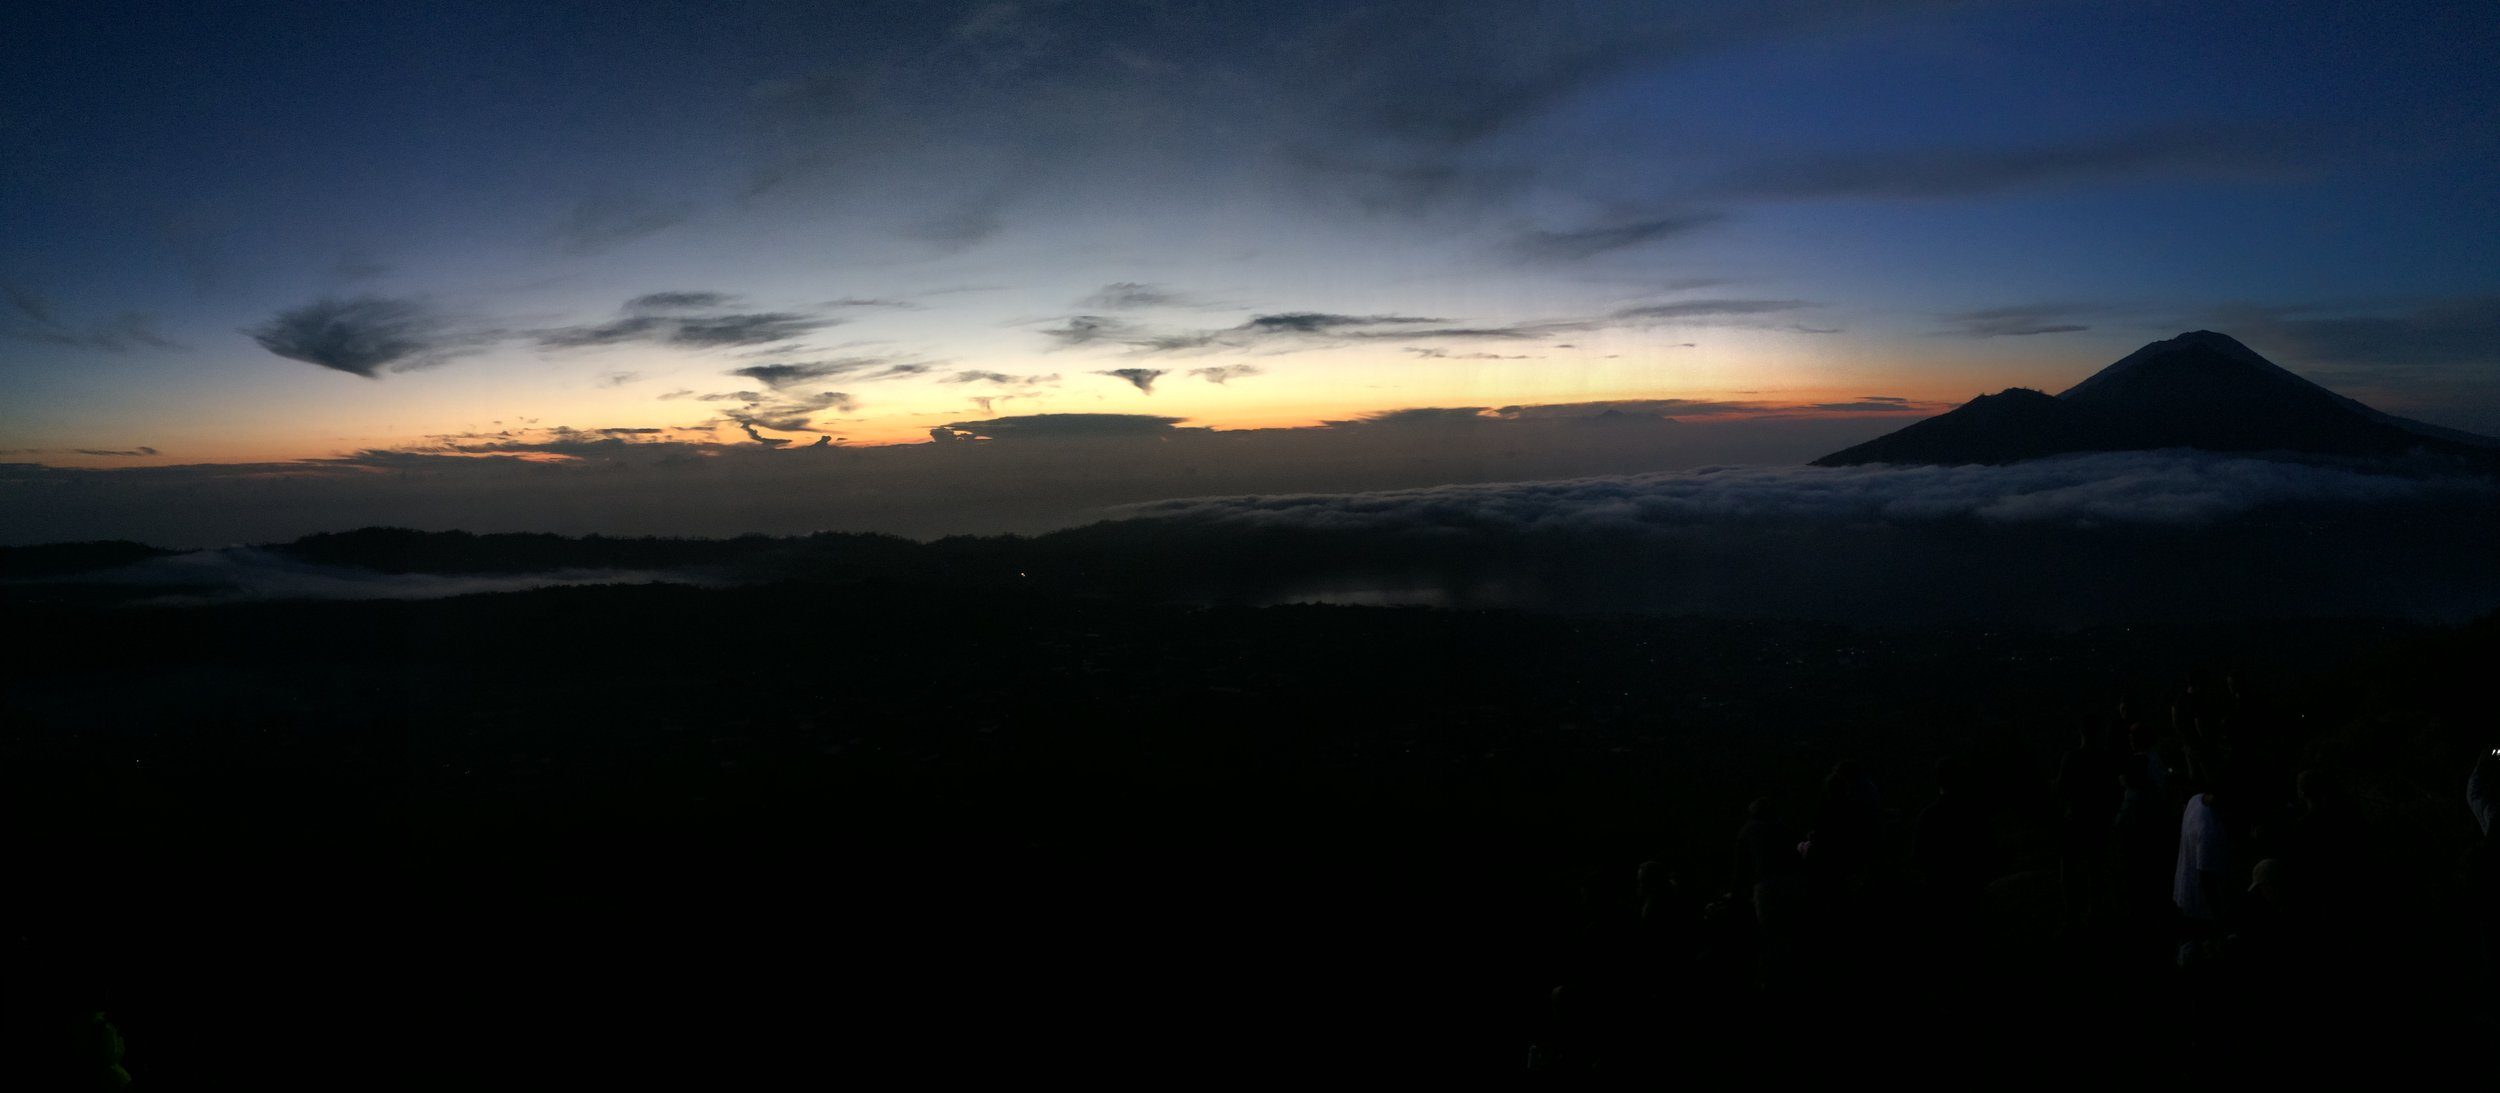 The view from the top of Mt. Batur before sunrise.